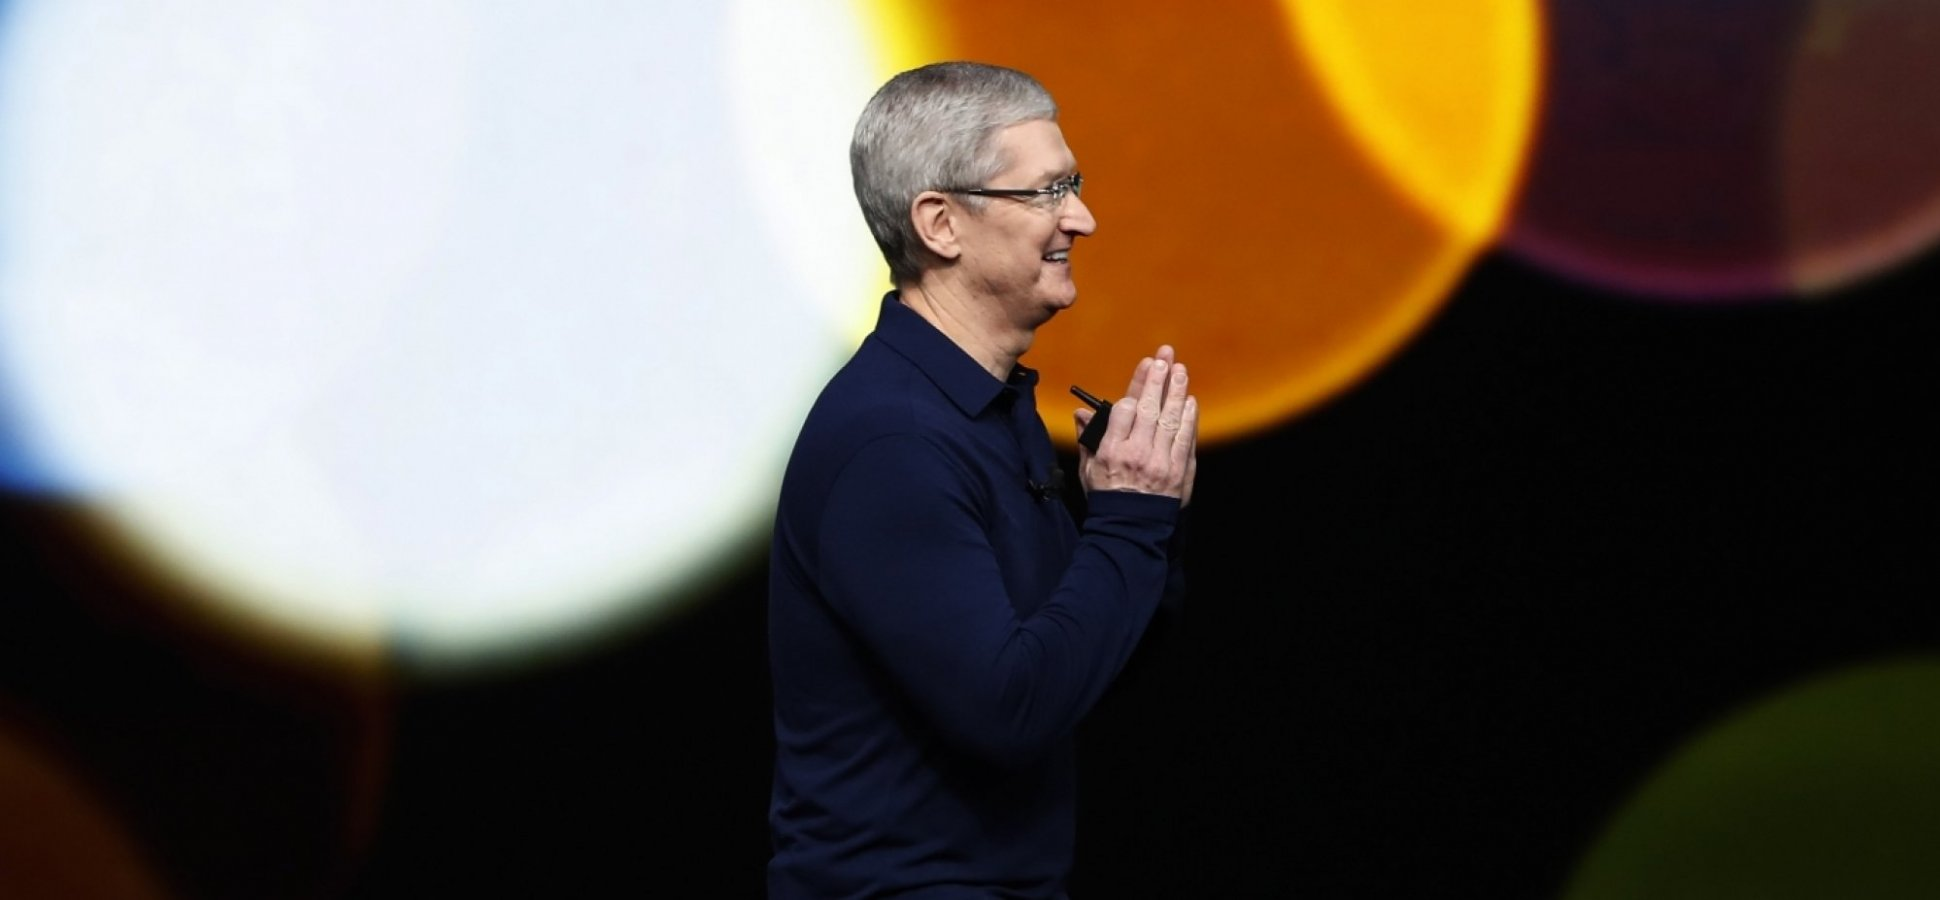 The 1 Crucial Trait Steve Jobs Taught Apple CEO Tim Cook